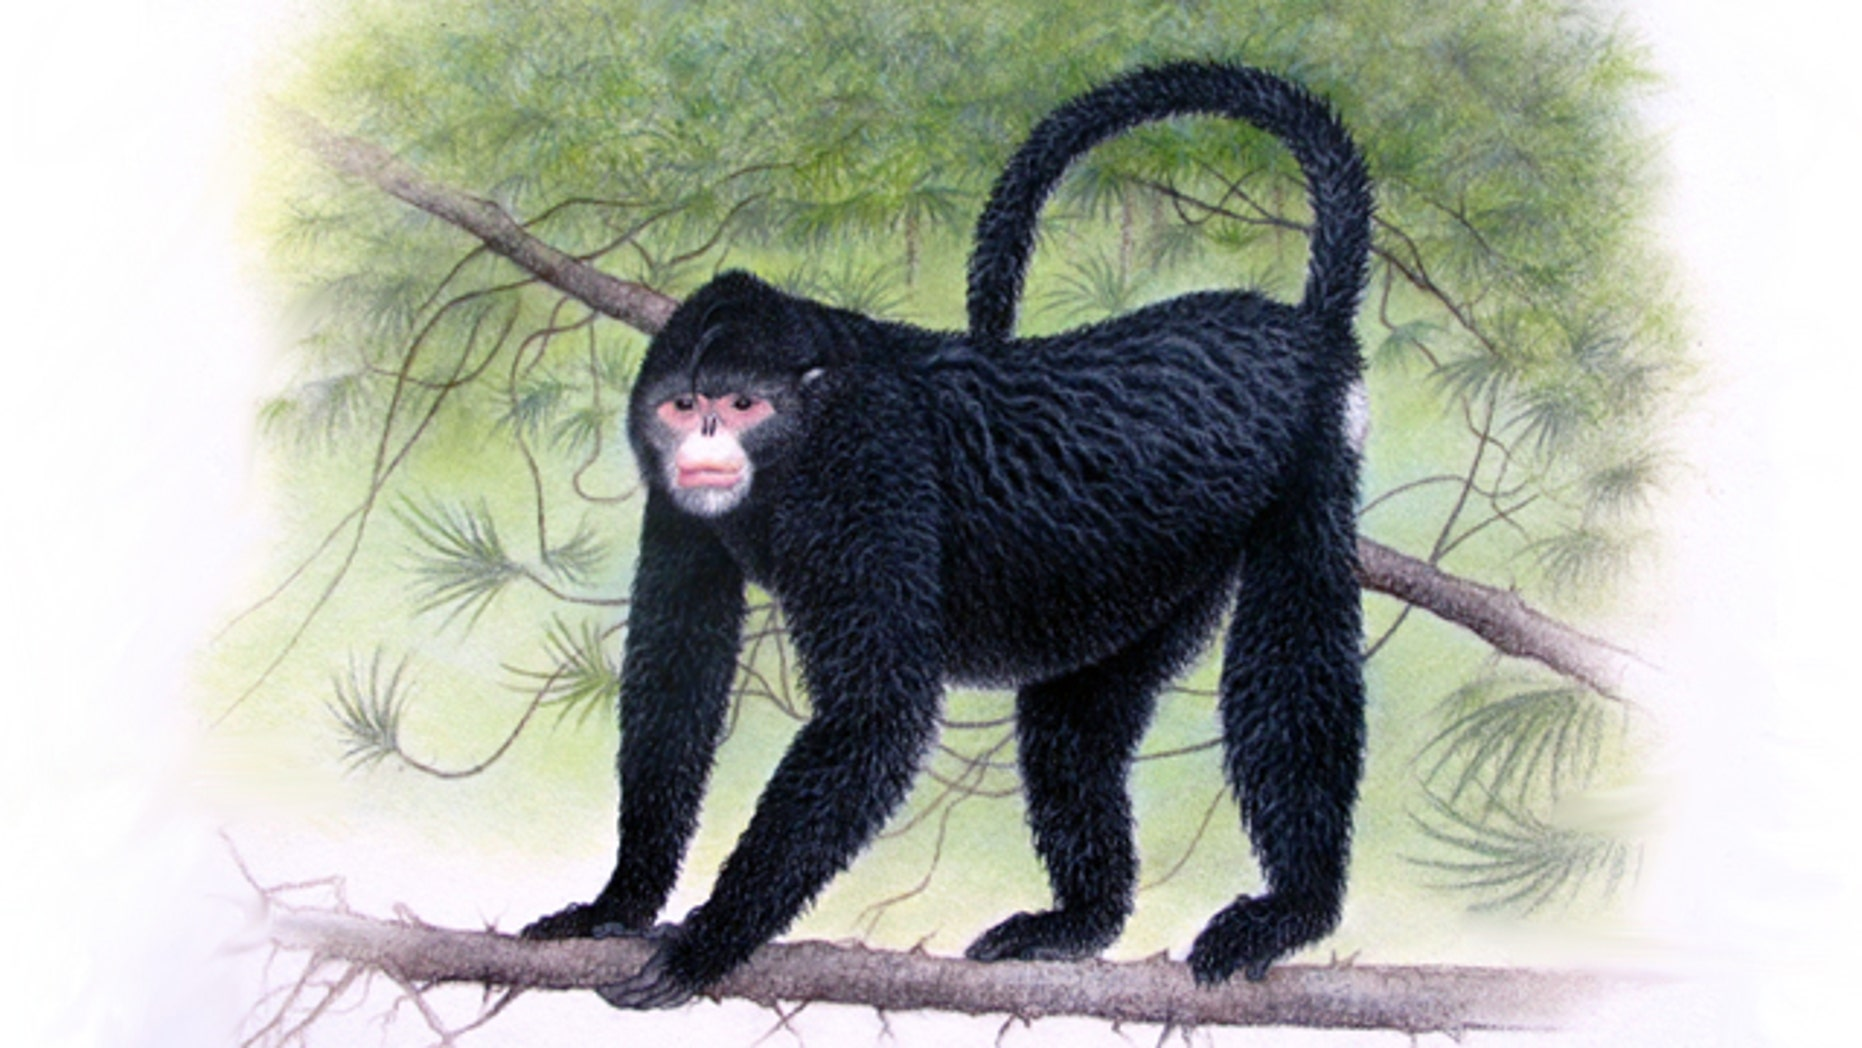 """In this undated image provided by Fauna & Flora International, a monkey with an """"Elvis"""" hairdo is seen. It was discovered in Myanmar in 2010."""